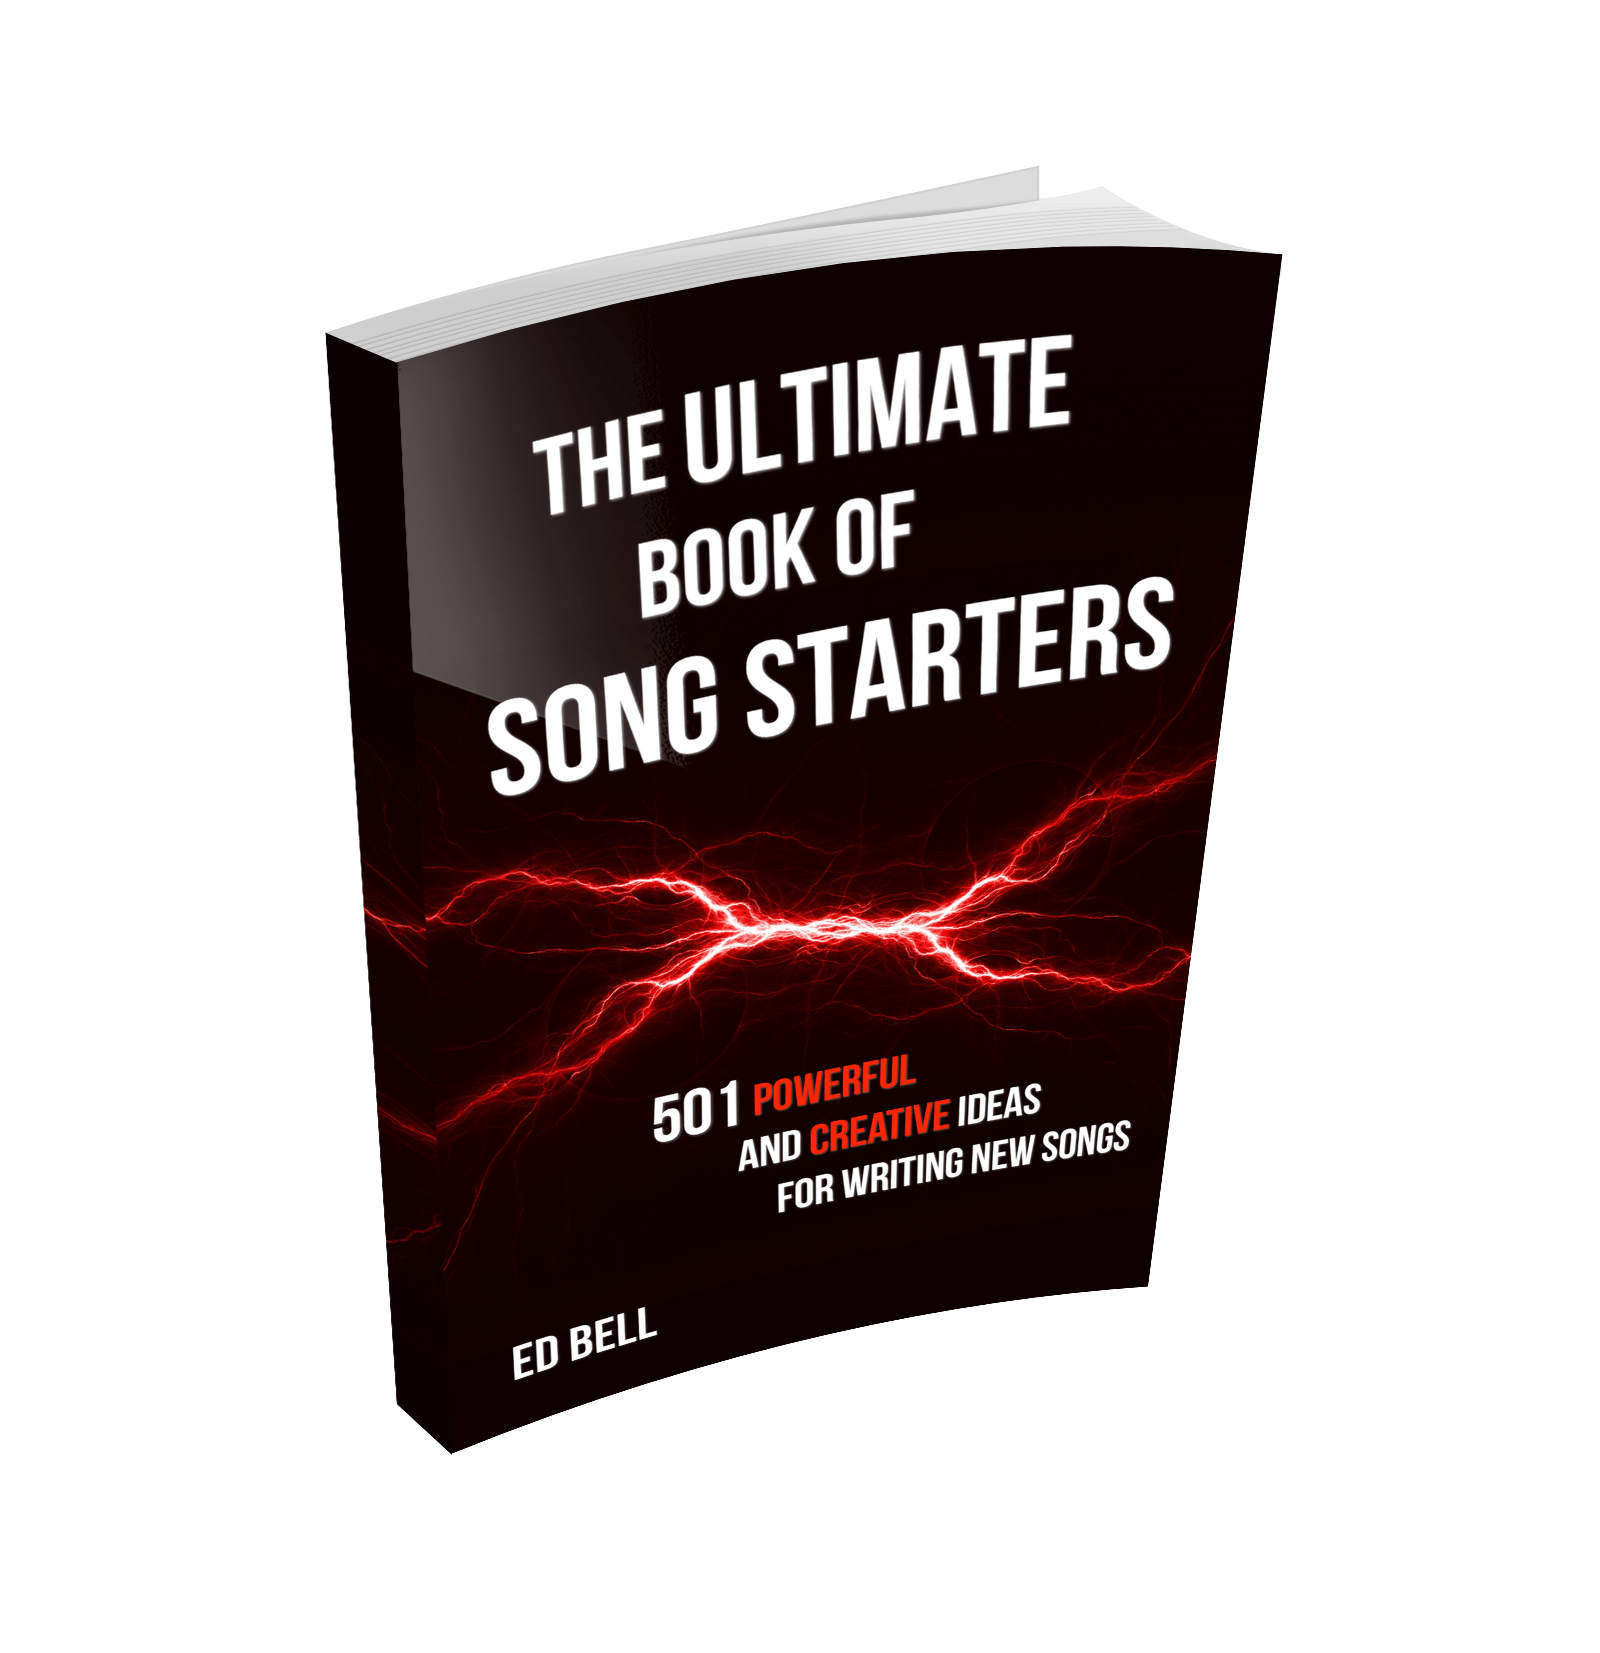 The Ultimate Book of Song Starters - Ed Bell | The Song Foundry